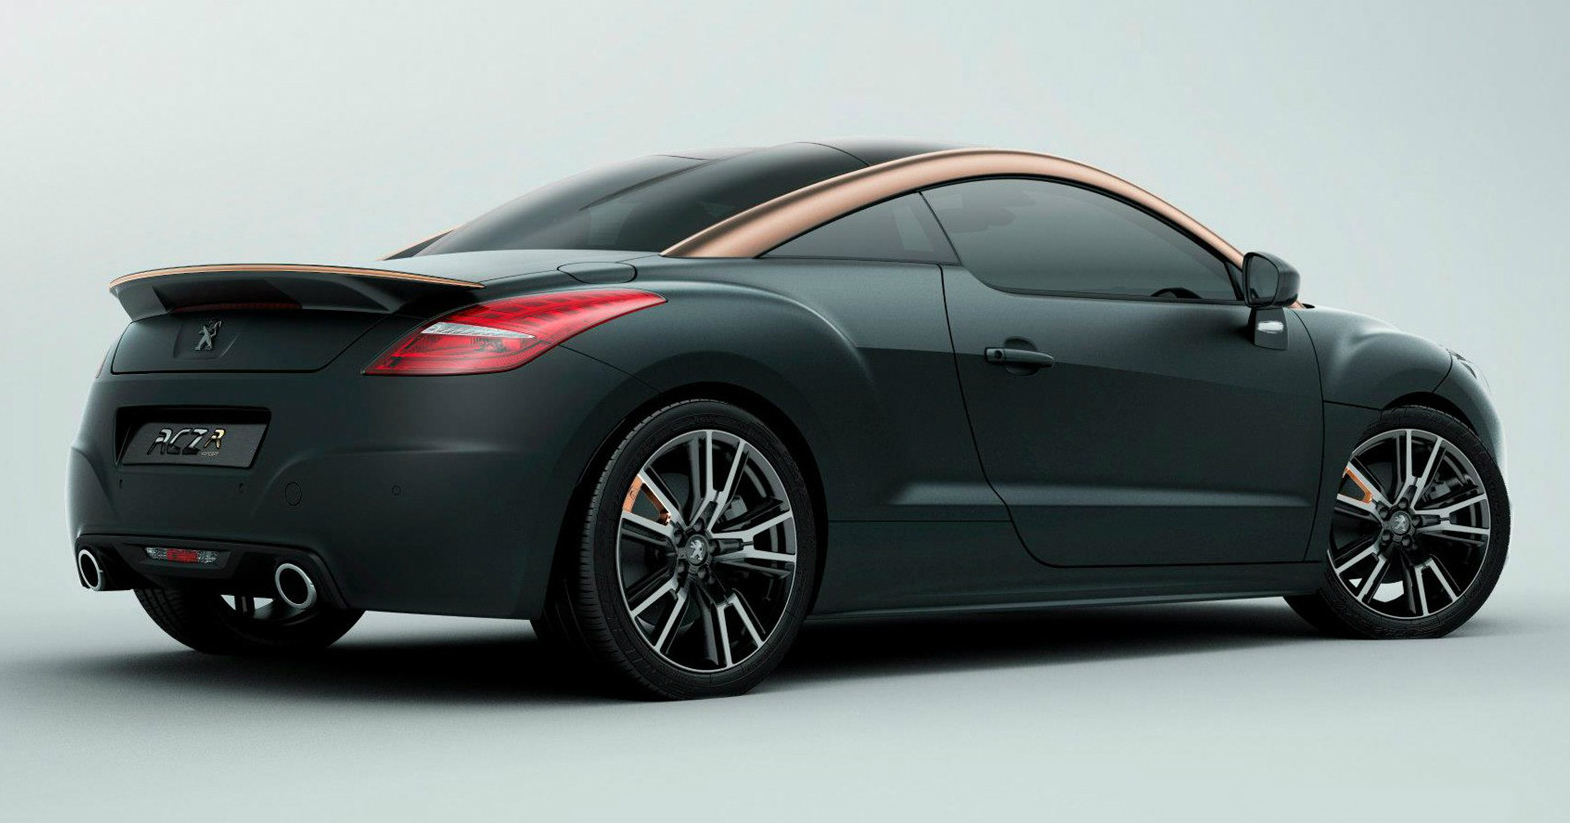 yeni peugeot rcz r t rkiye fiyat a kland. Black Bedroom Furniture Sets. Home Design Ideas